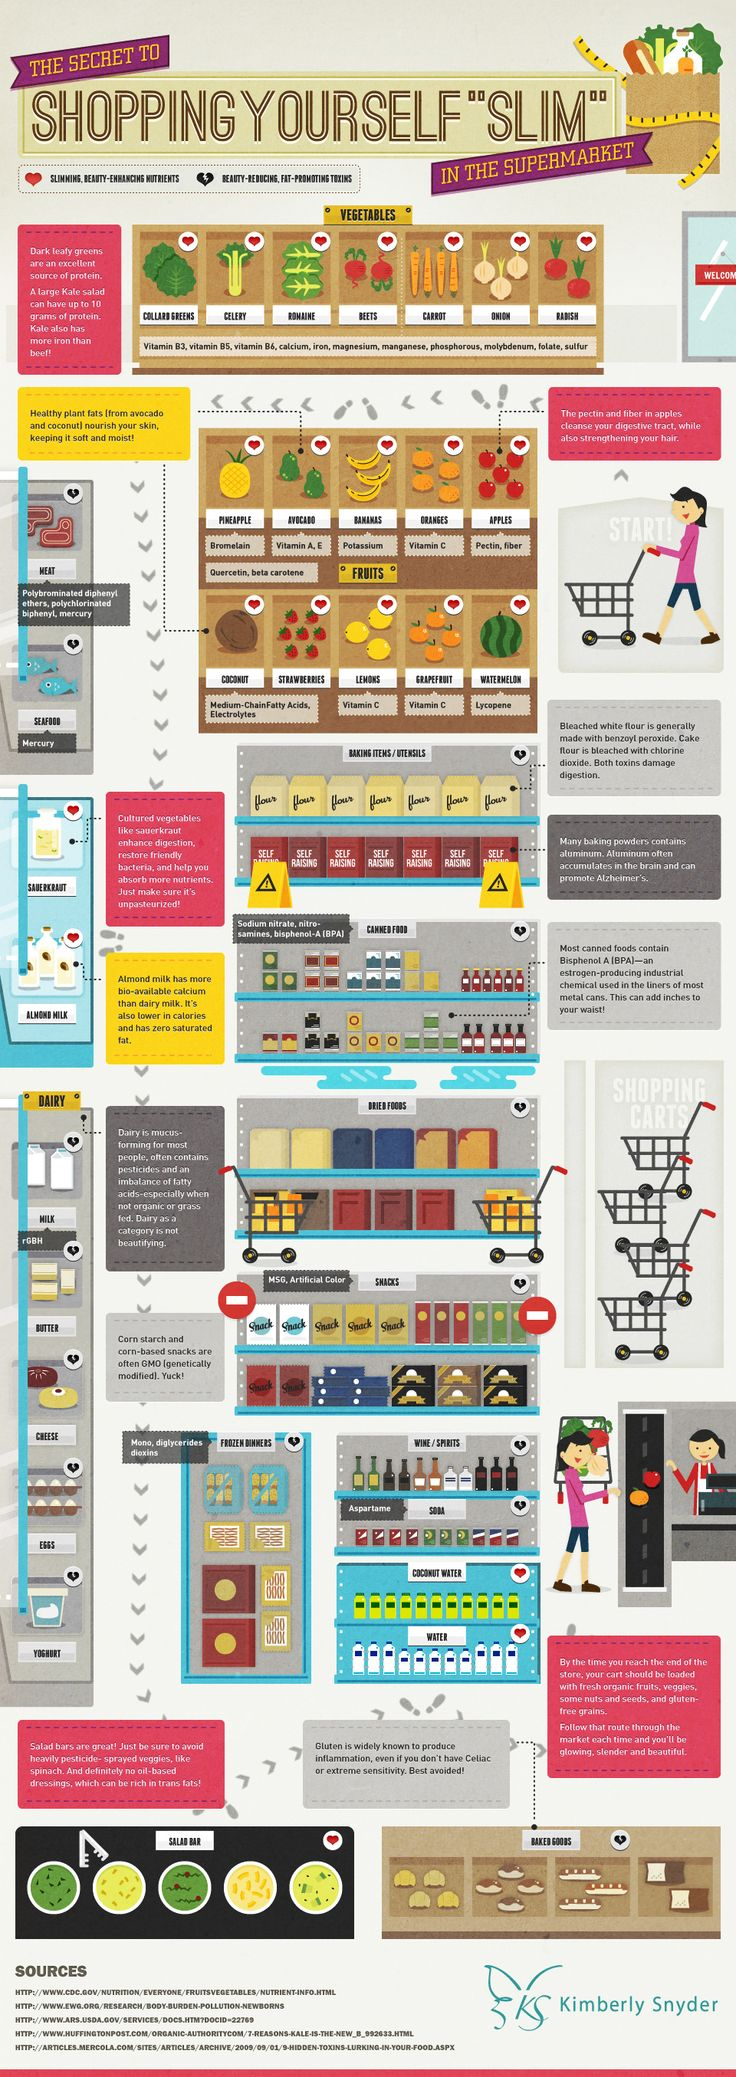 Our infographic will show you the secret to healthy grocery shopping, including which aisles to avoid, and which ingredients you should never purchase.